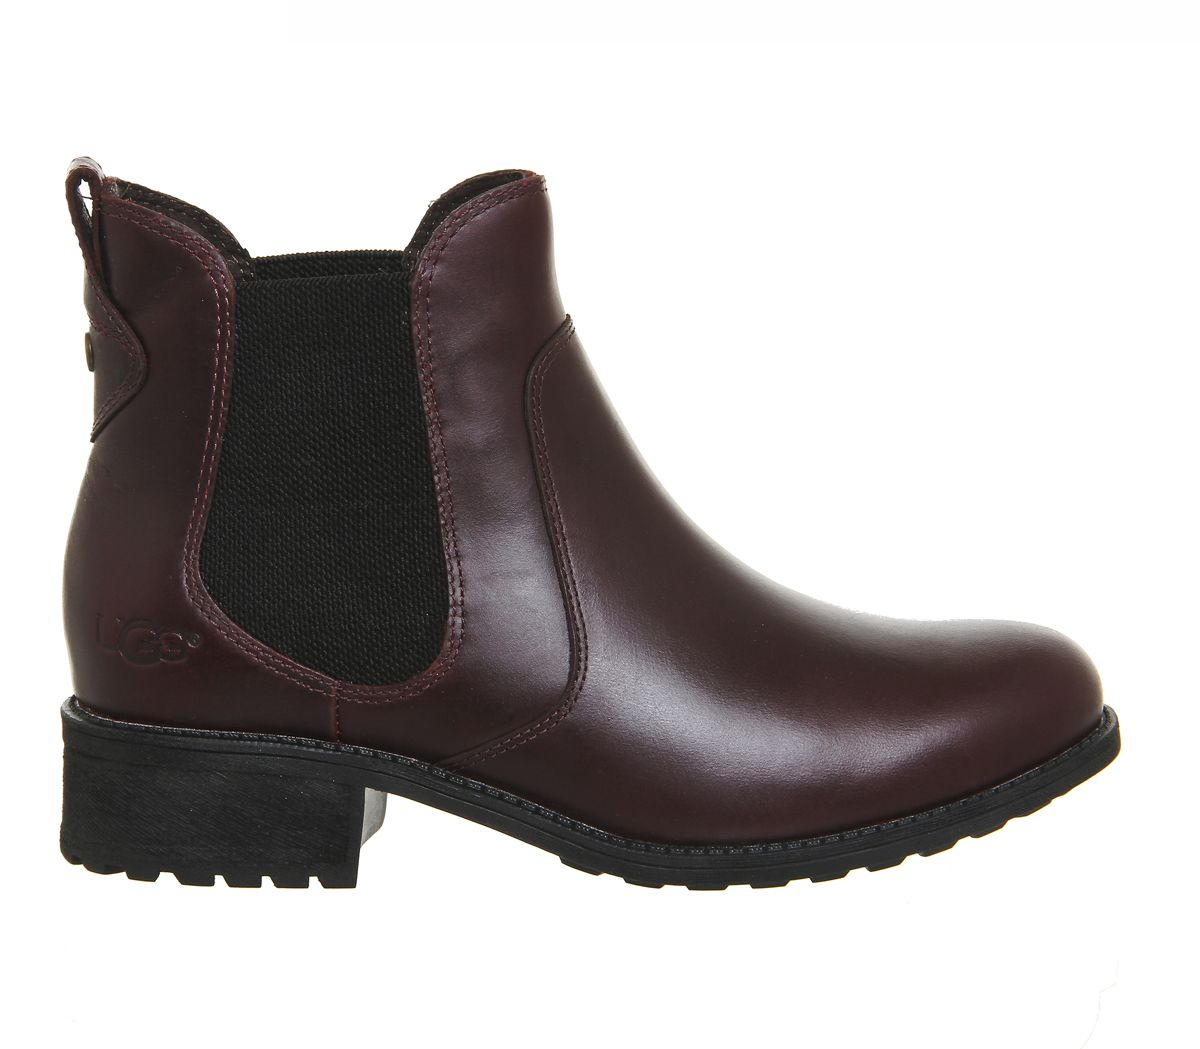 Ugg Bonham Chelsea Boots Cordovan Leather Ankle Boots